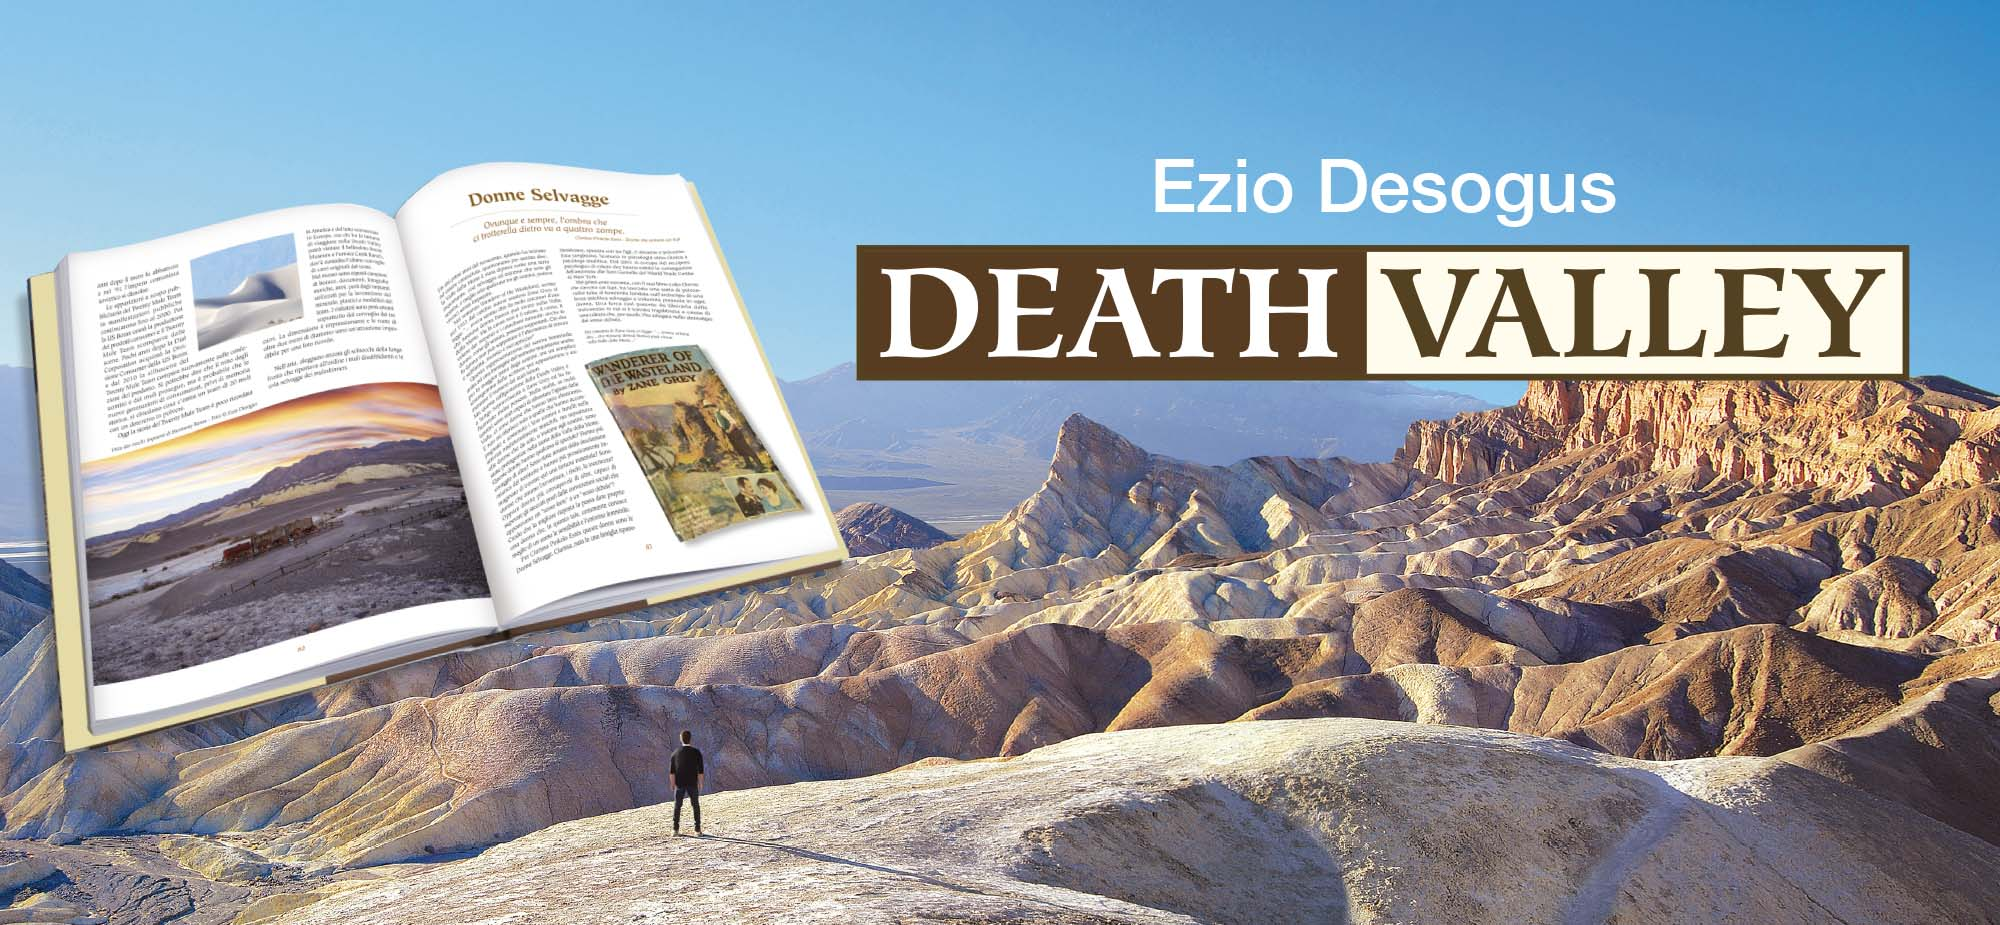 death valley libro valle della morte zabriskie point